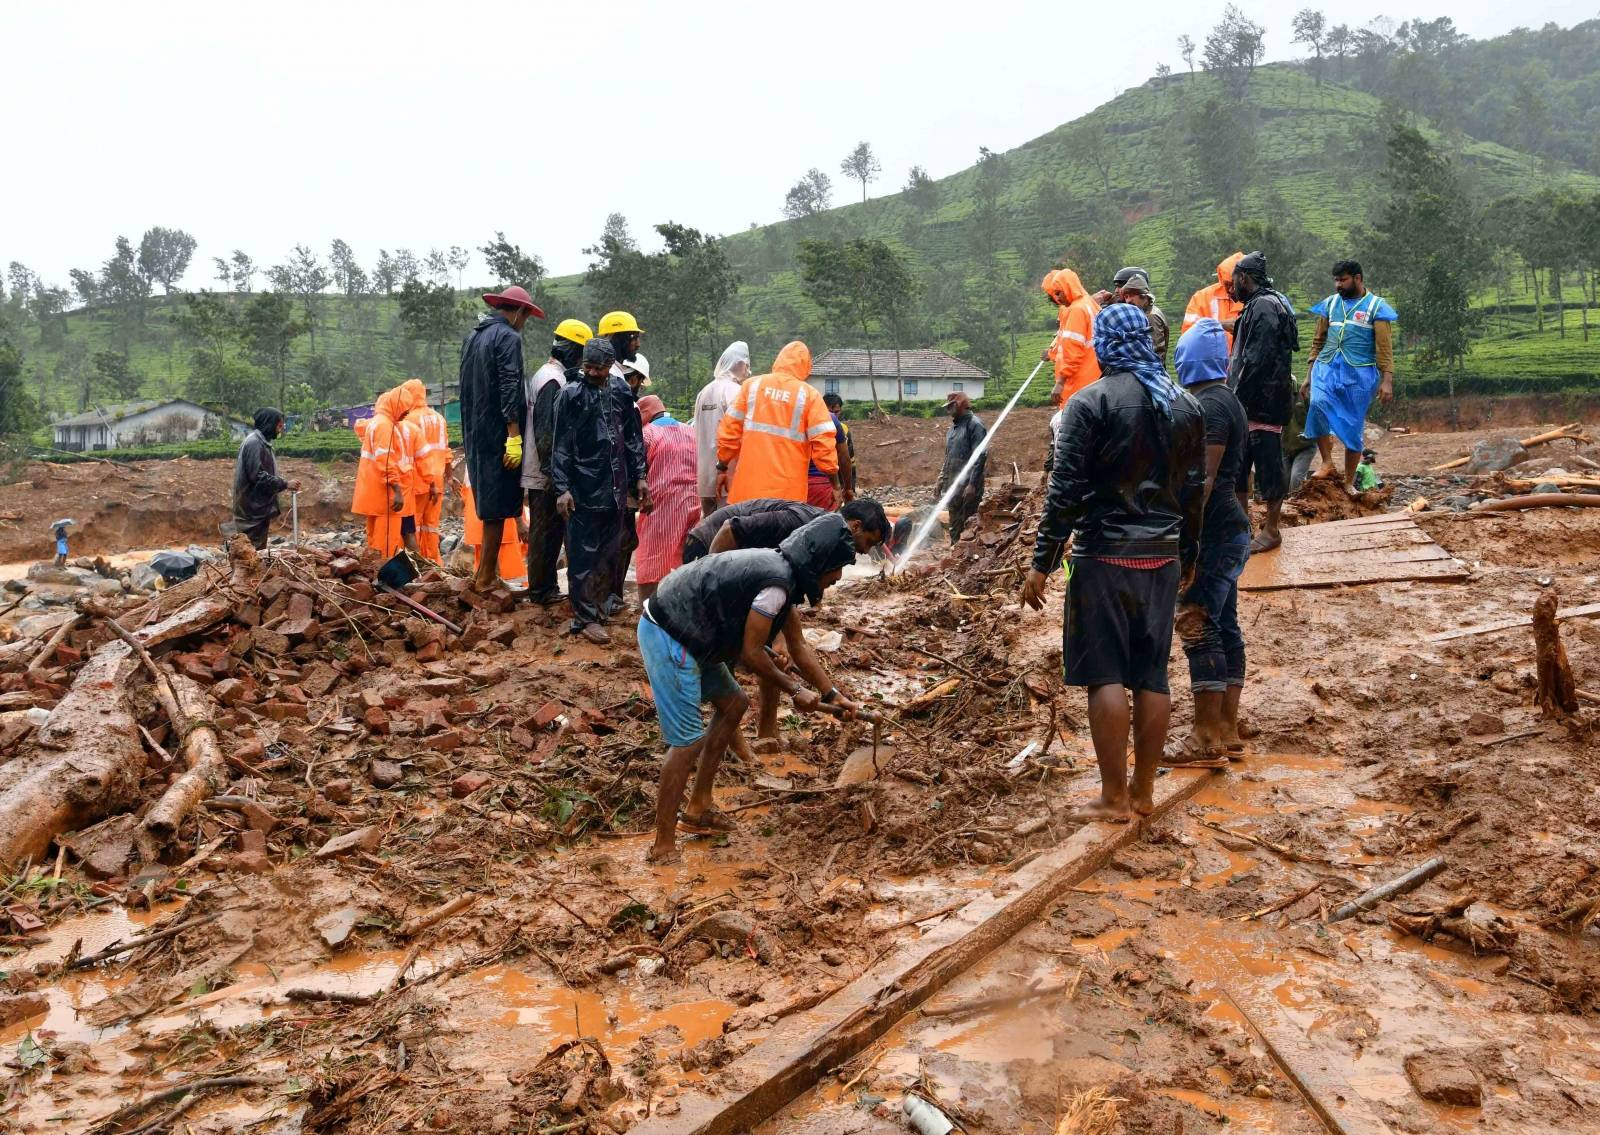 Rescuers remove debris as they search for victims of a landslide caused by torrential monsoon rains in Meppadi in Wayanad district